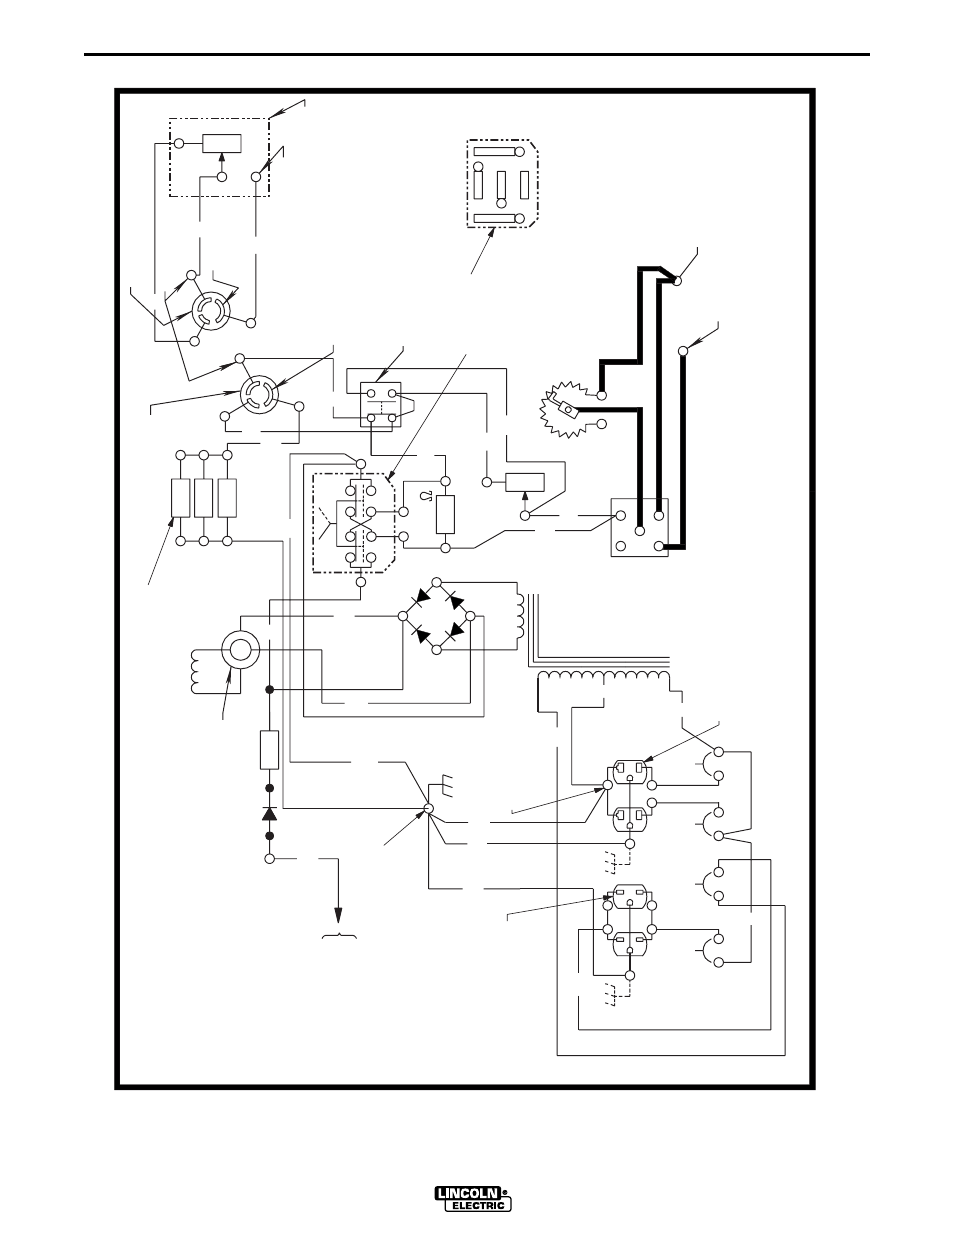 wiring diagrams, sae400 weld'n air, control wiring diagram ... lincoln traps wiring diagram atlas traps wiring diagram